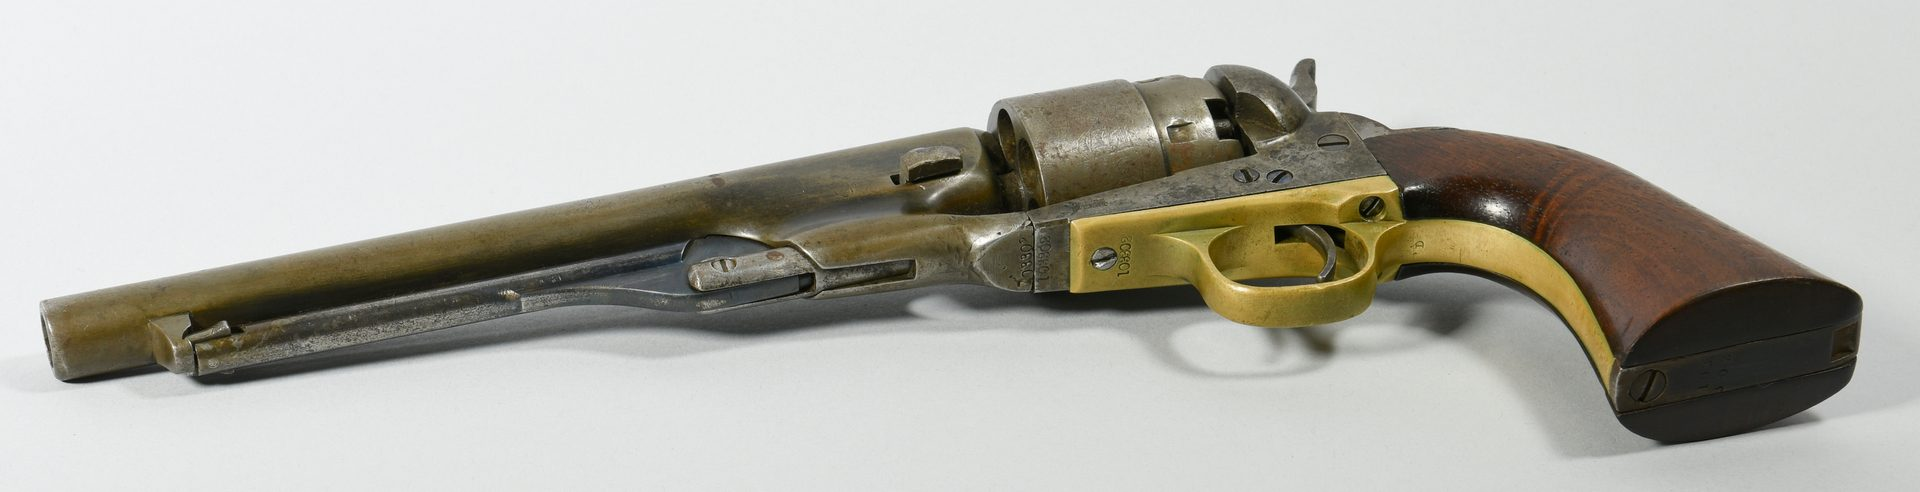 Lot 299: Colt Model 1860 Army Revolver, .44 Caliber